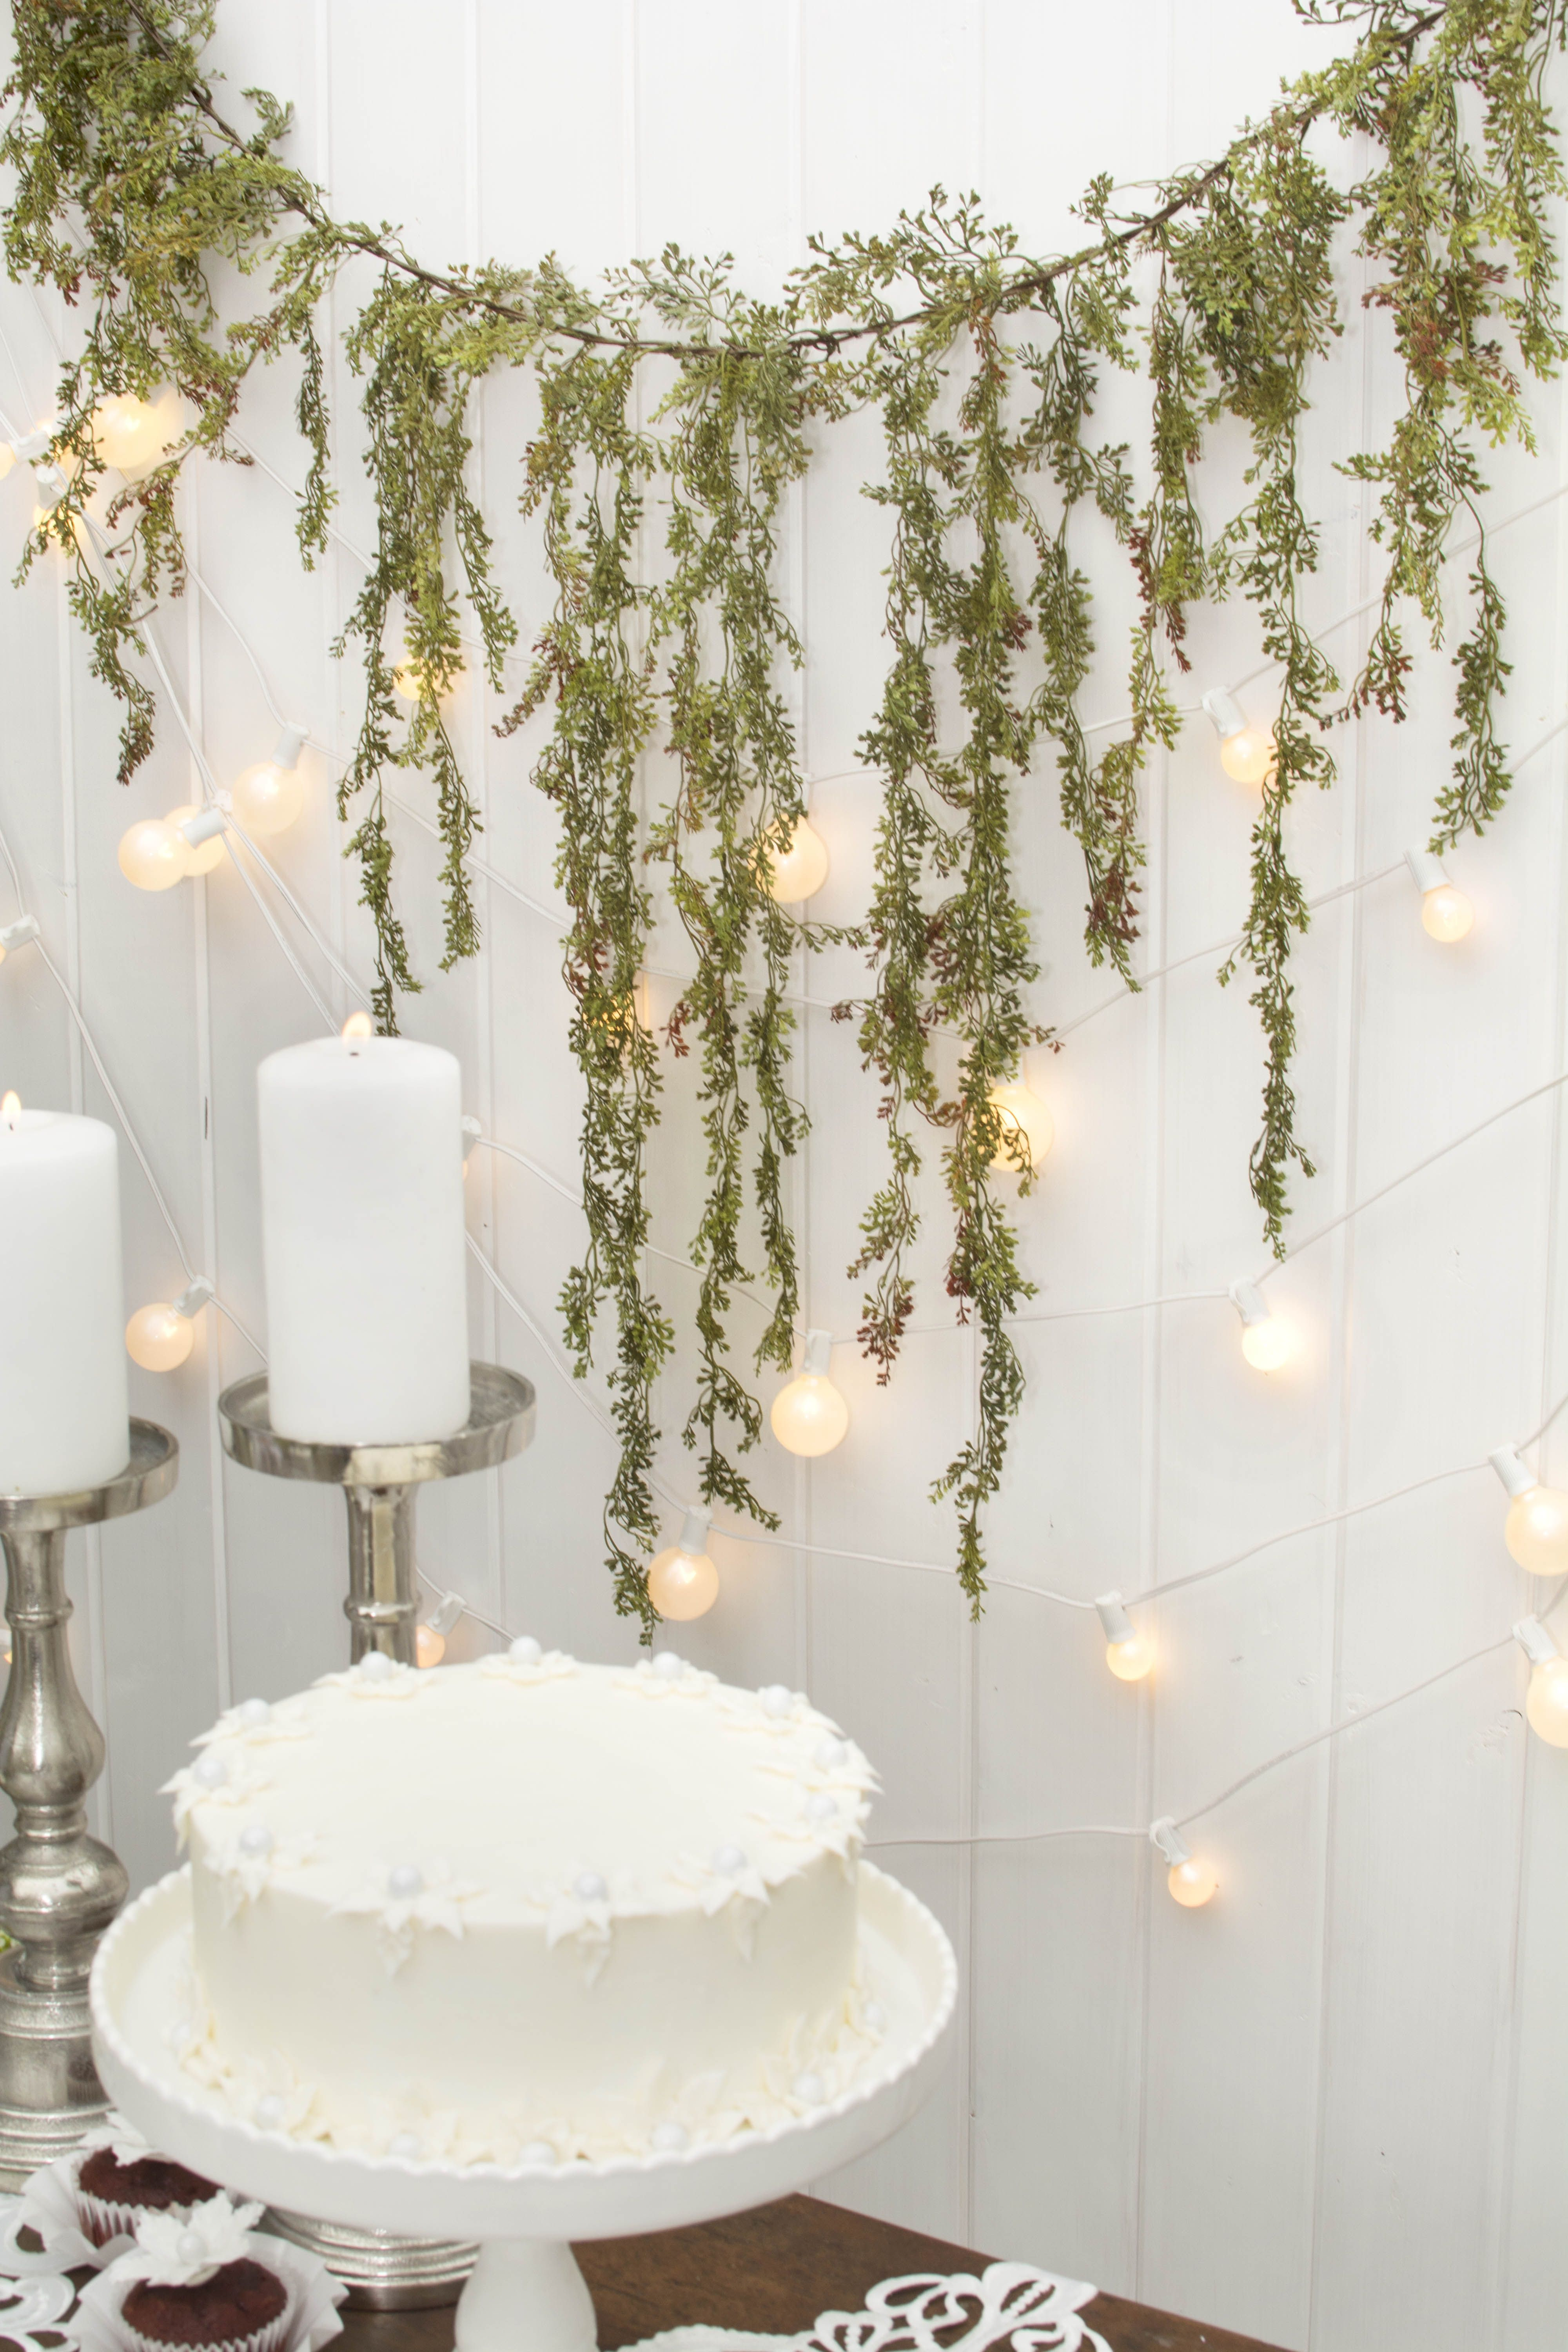 Use Our Vine Garland As A Backdrop Or Table Dressing